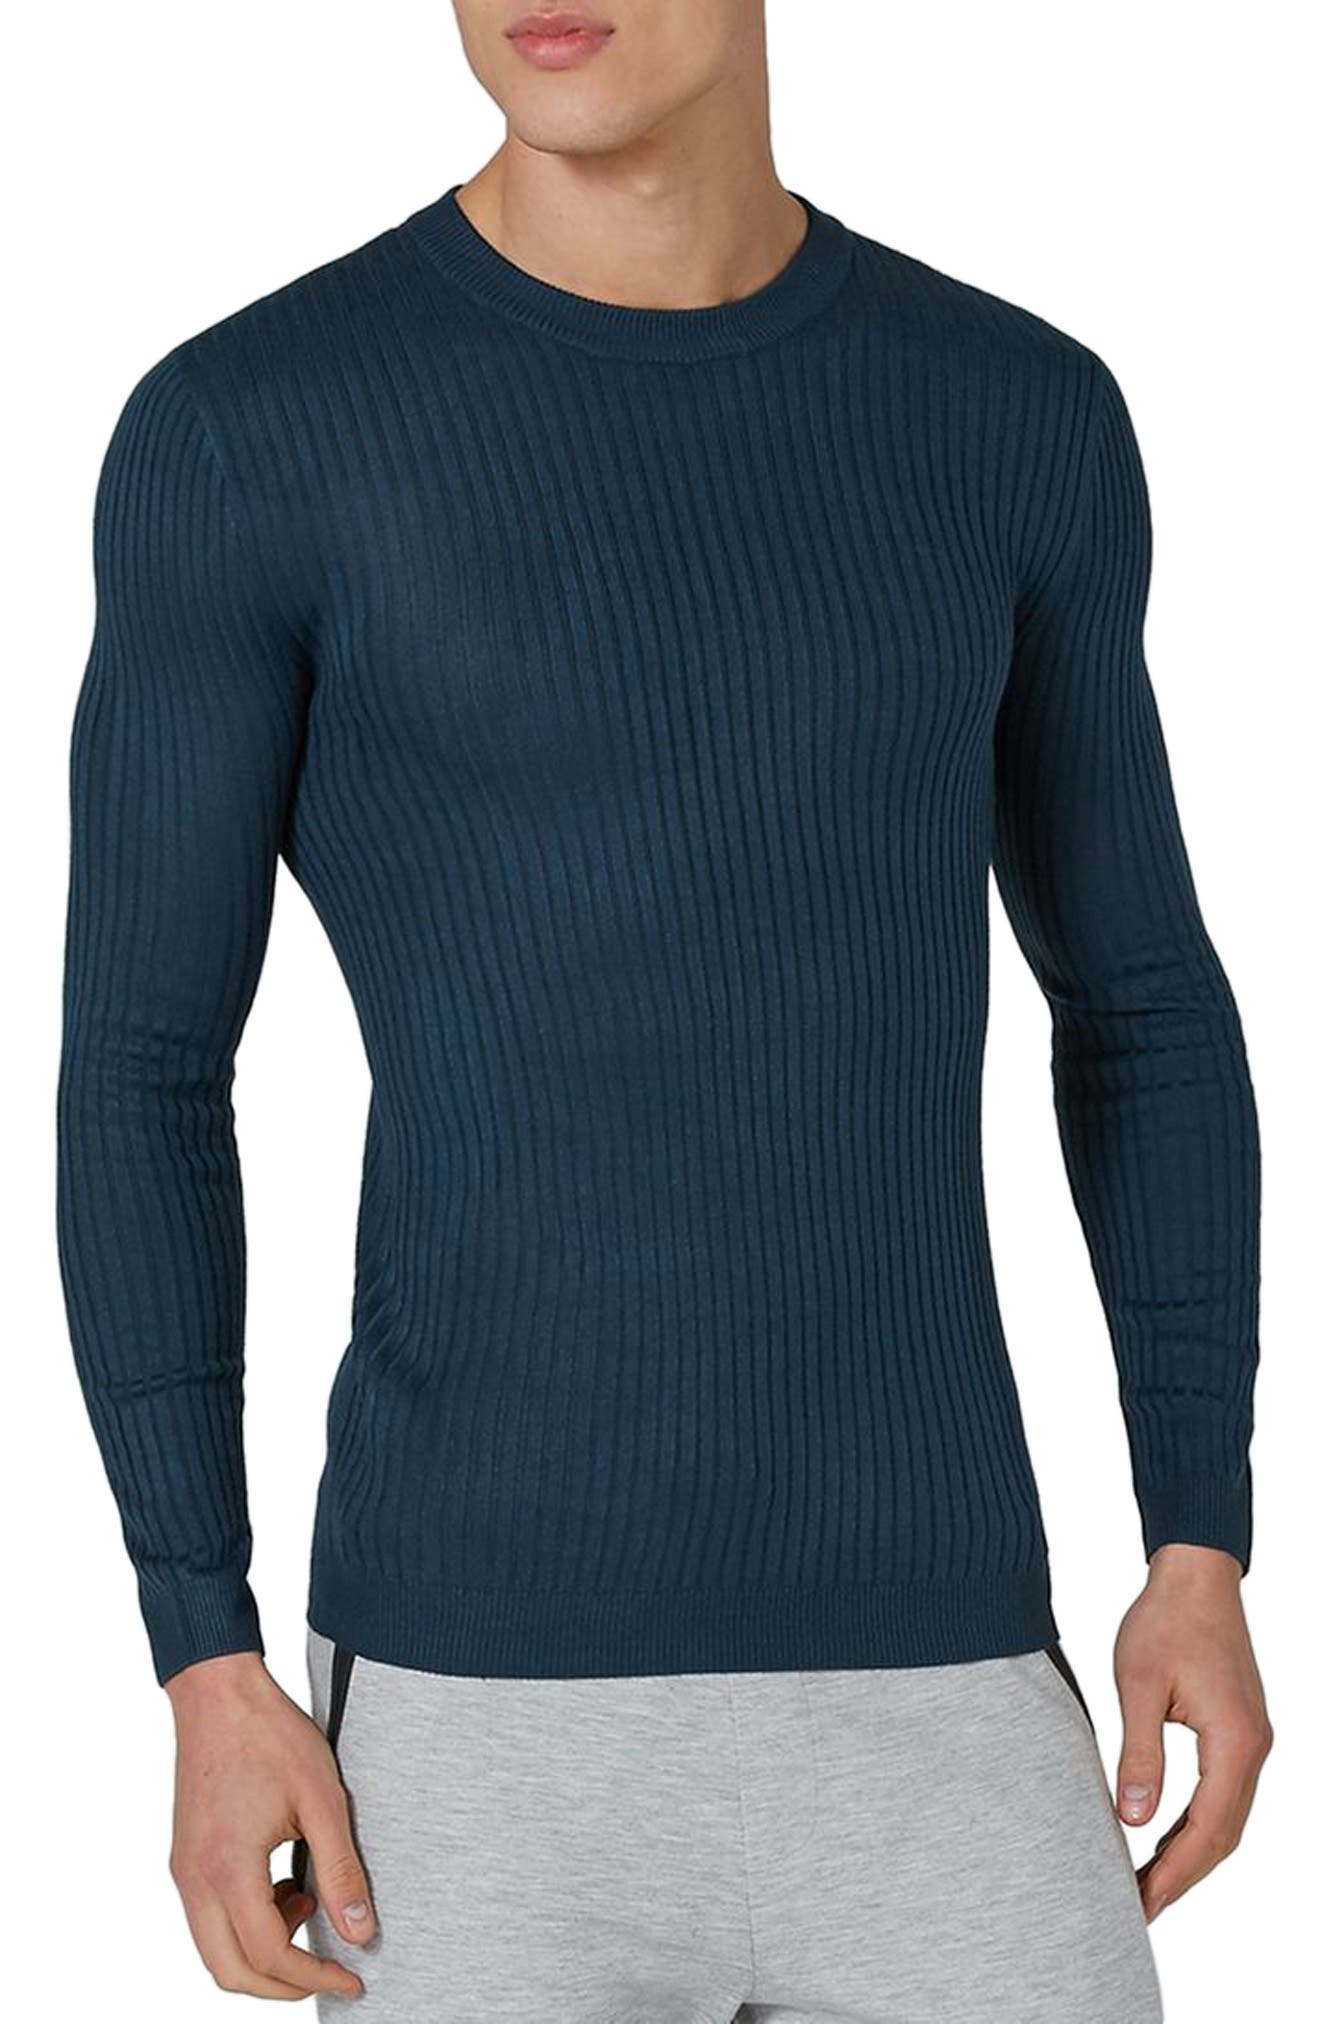 Ribbed Muscle Fit Sweater,                             Main thumbnail 1, color,                             420